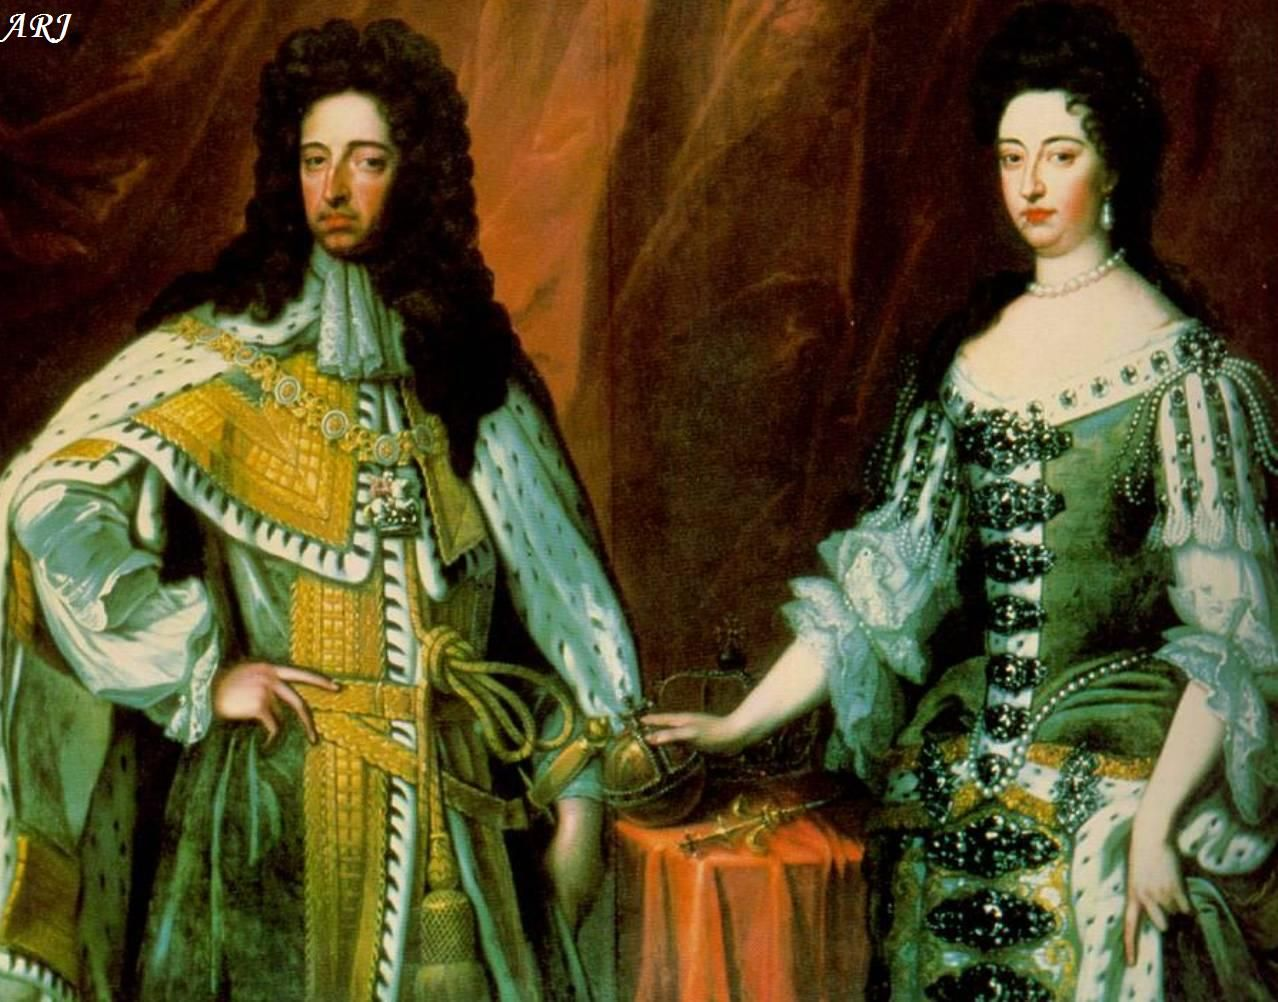 King William Iii Reign 1689 To 1702 And Queen Mary Ii Stuart